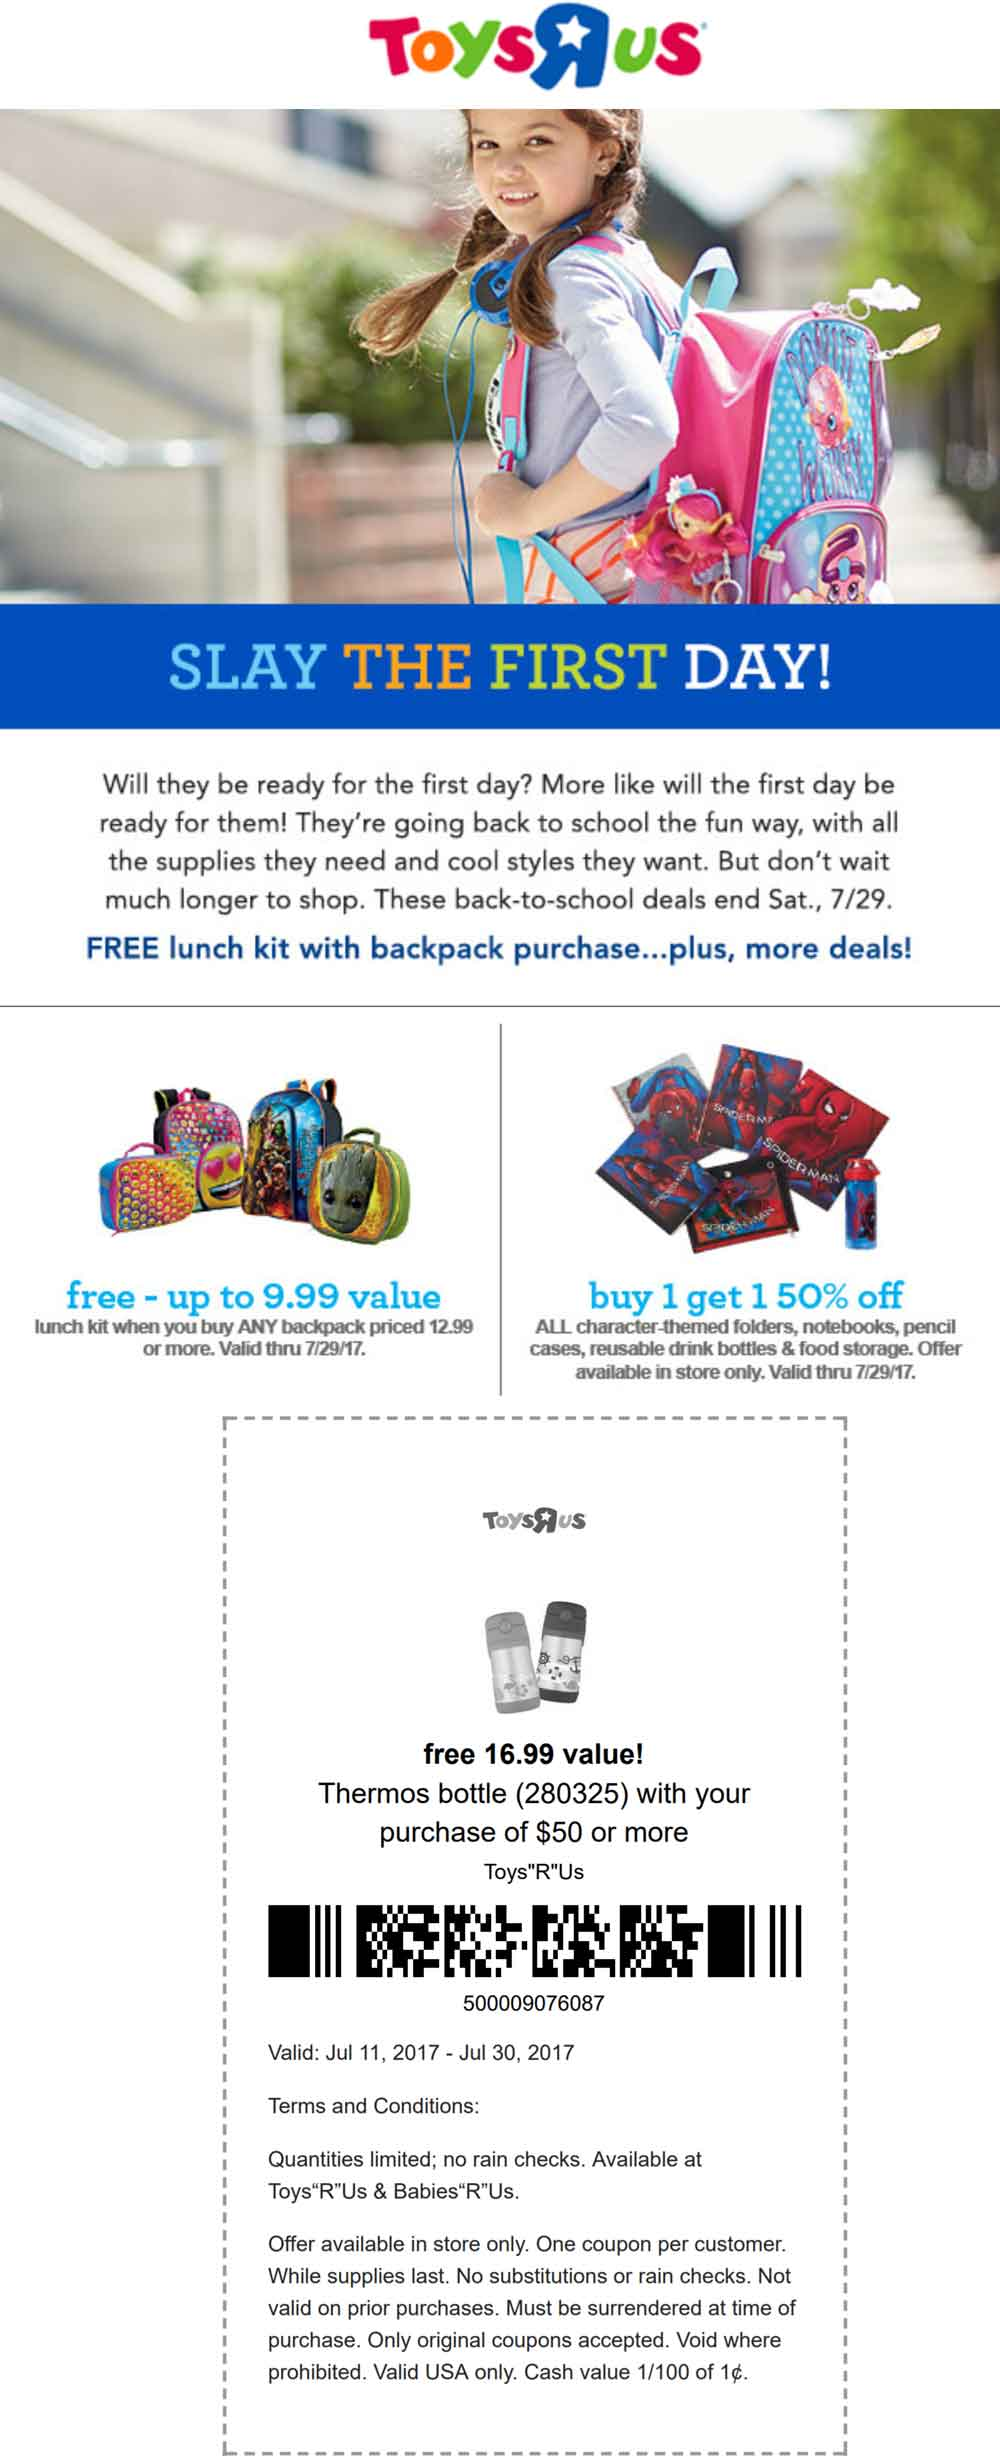 Toys R Us Coupon August 2018 $17 thermos free with $50 spent, free lunch box with any backpack at Toys R Us